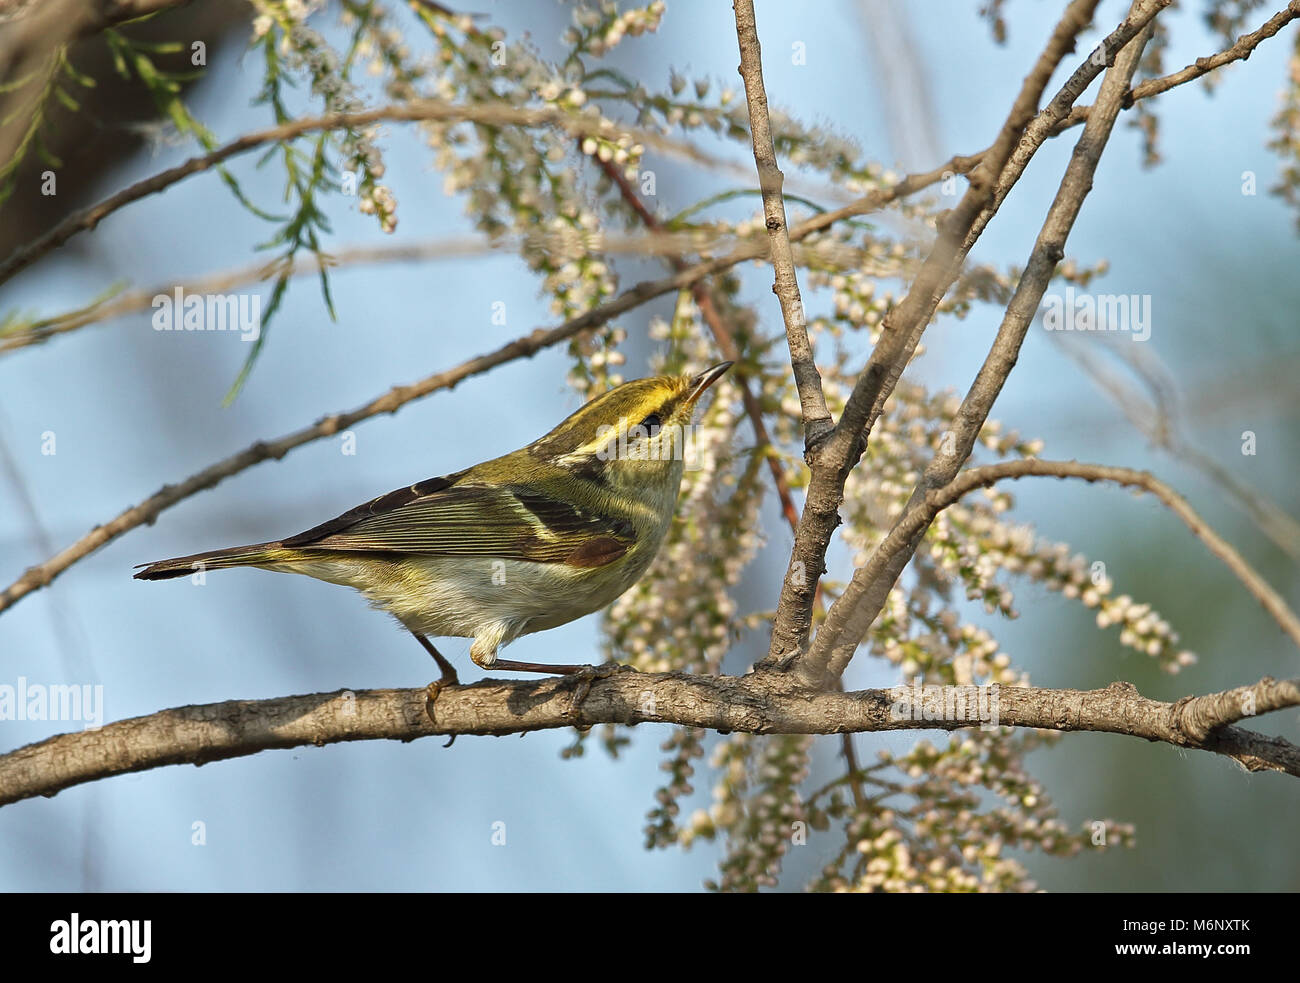 Pallas's Warbler (Phylloscopus proregulus) adult perched on branch  Hebei, China       May Stock Photo